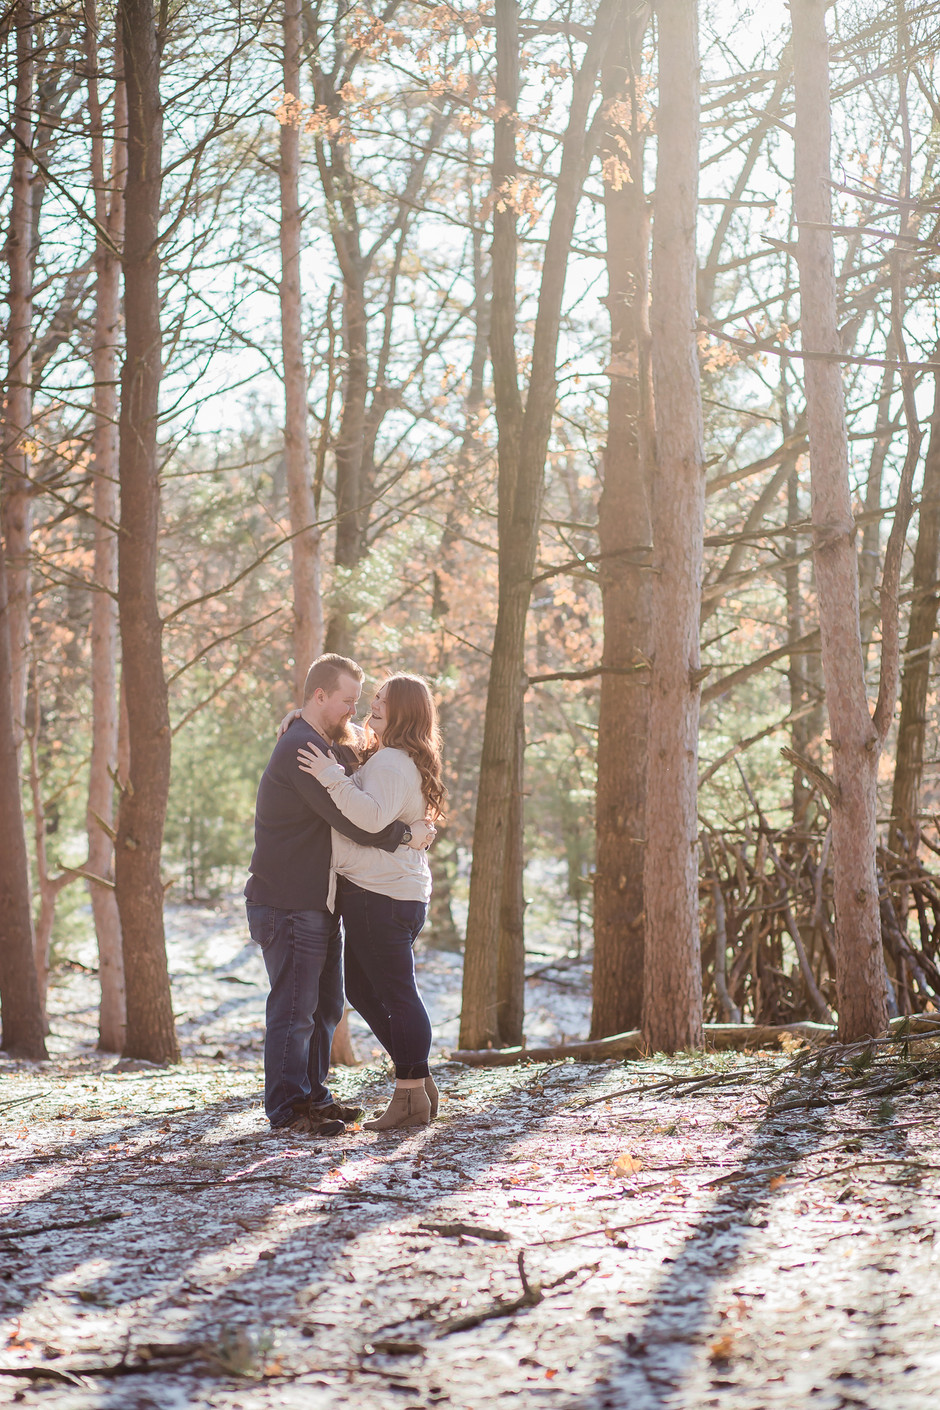 Ryan and Kelli's Engagement Session